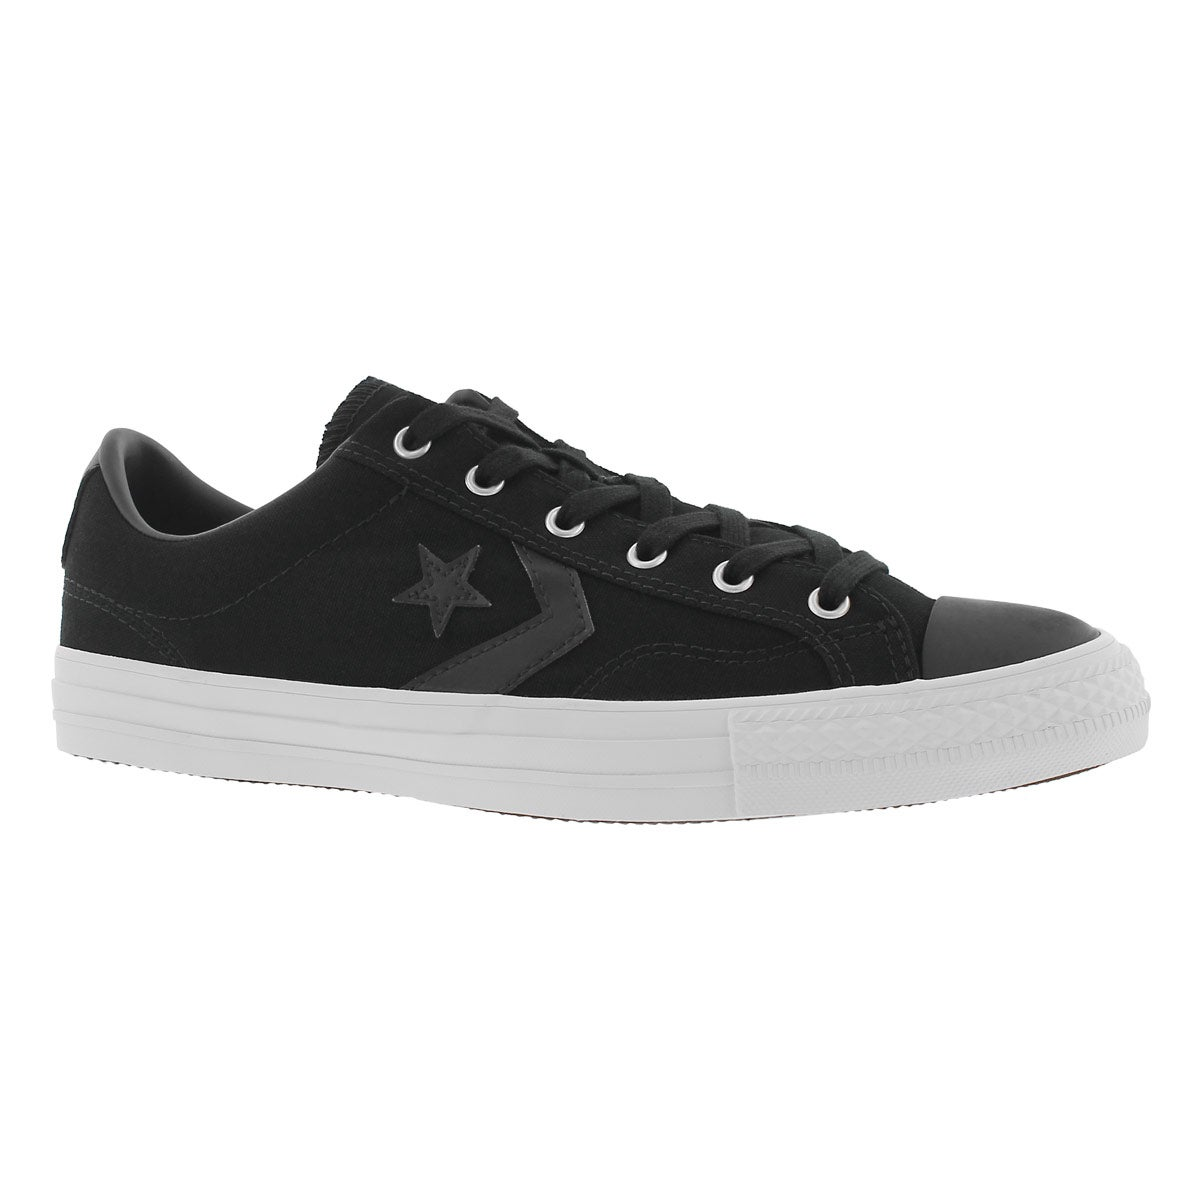 Men's STAR PLAYER black canvas sneakers